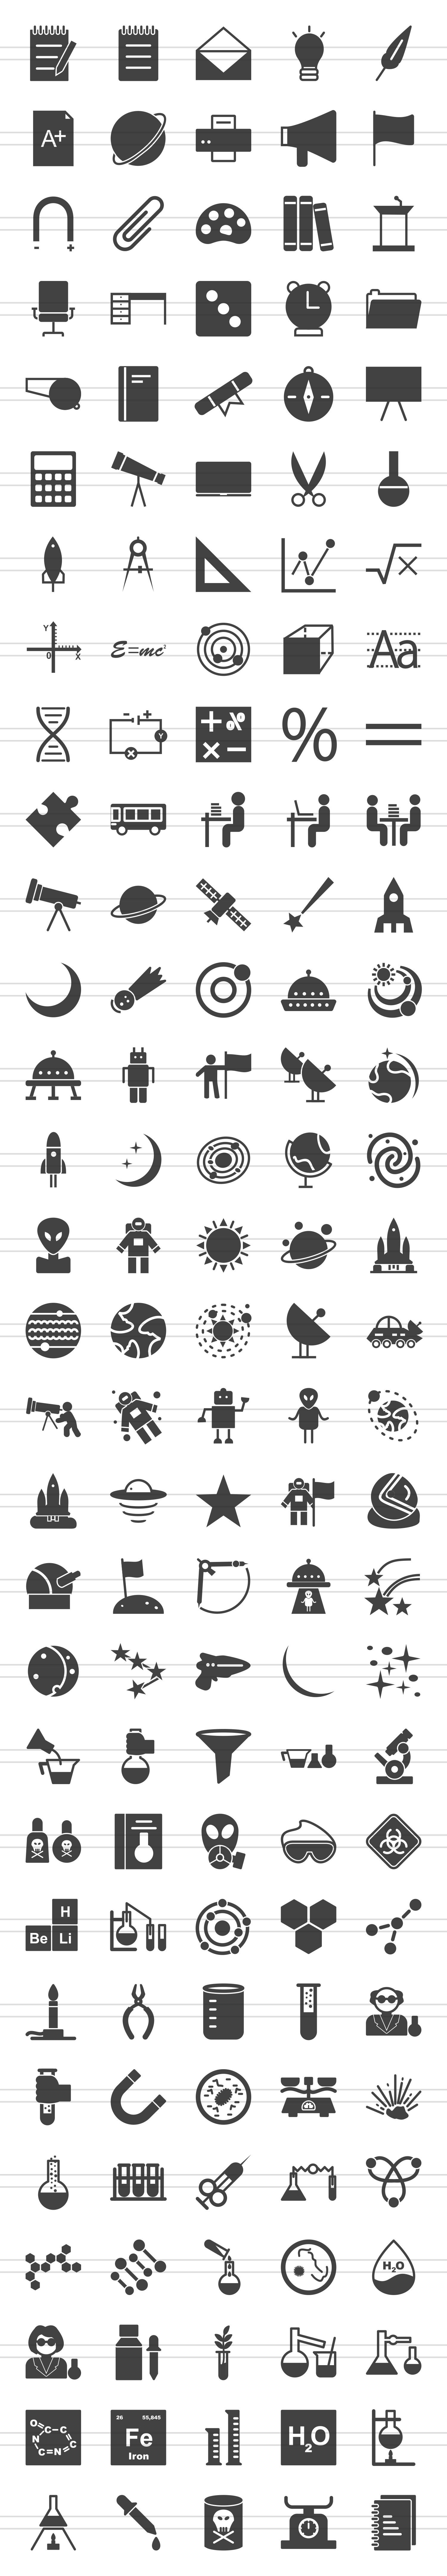 150 Science Glyph Icons example image 3